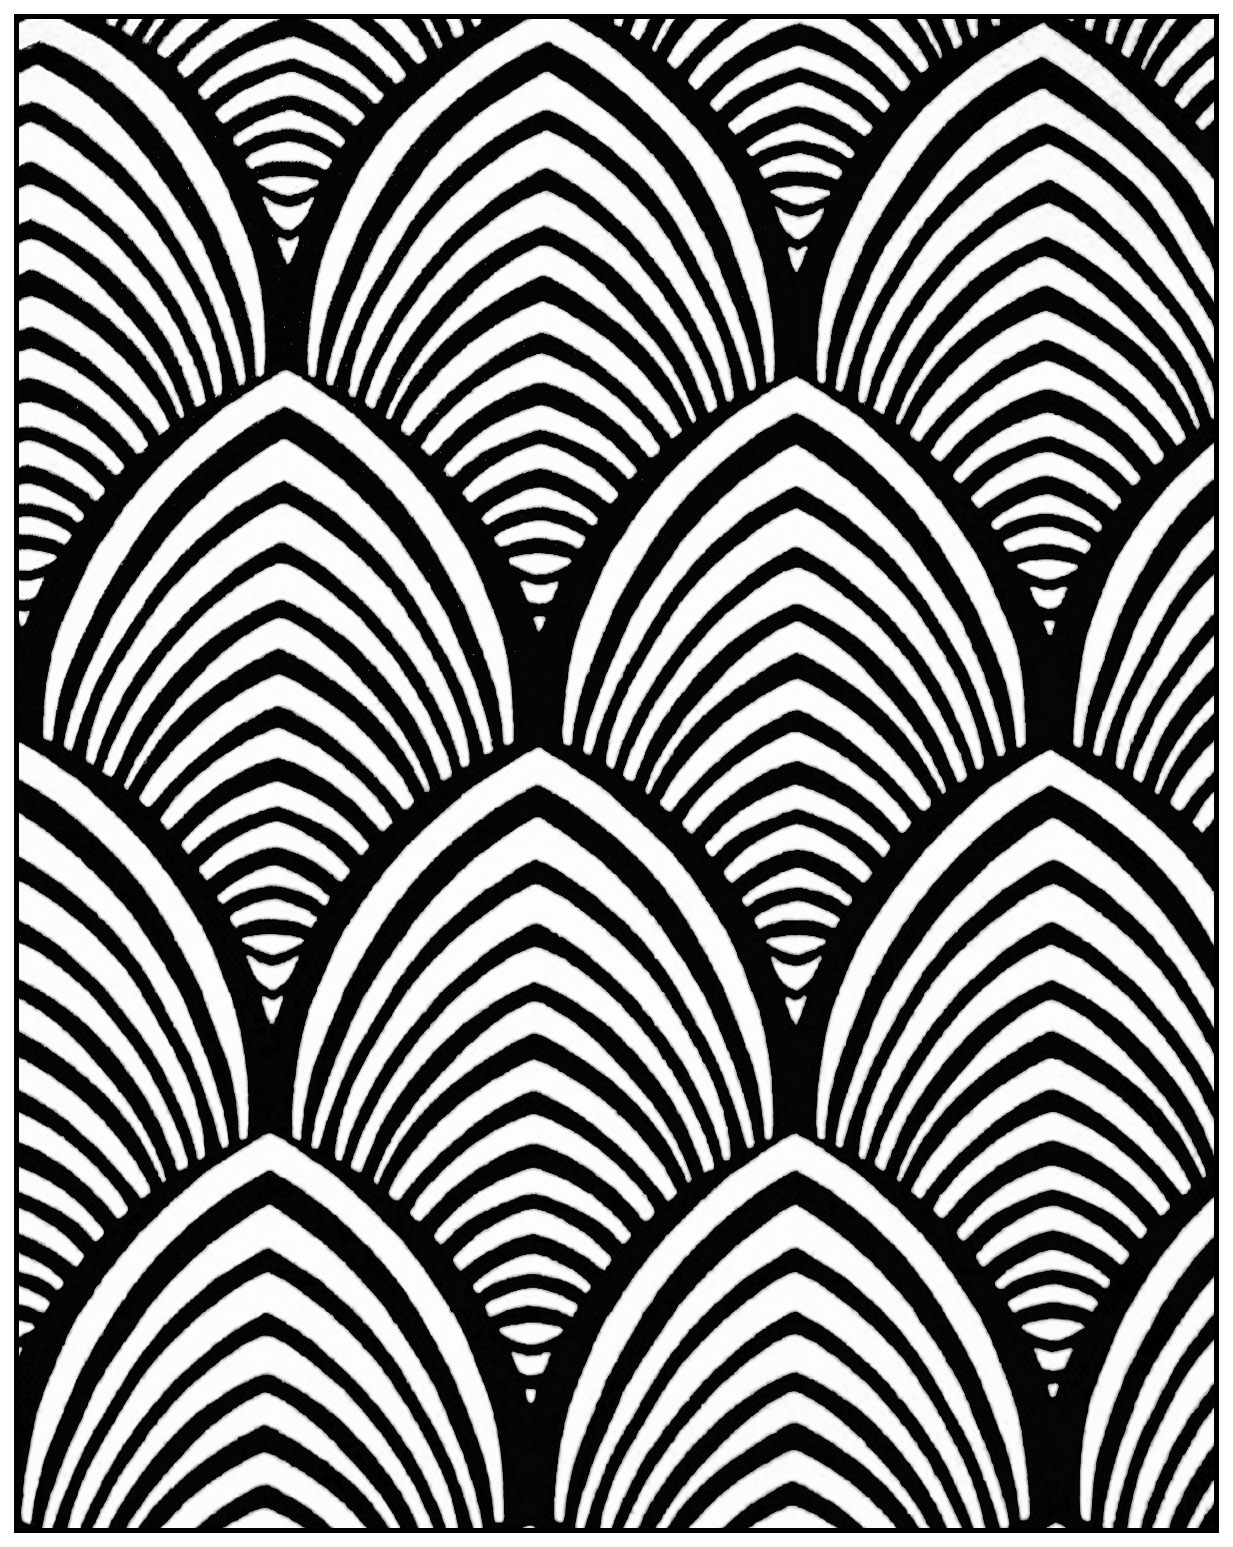 Geometric patterns art deco 4